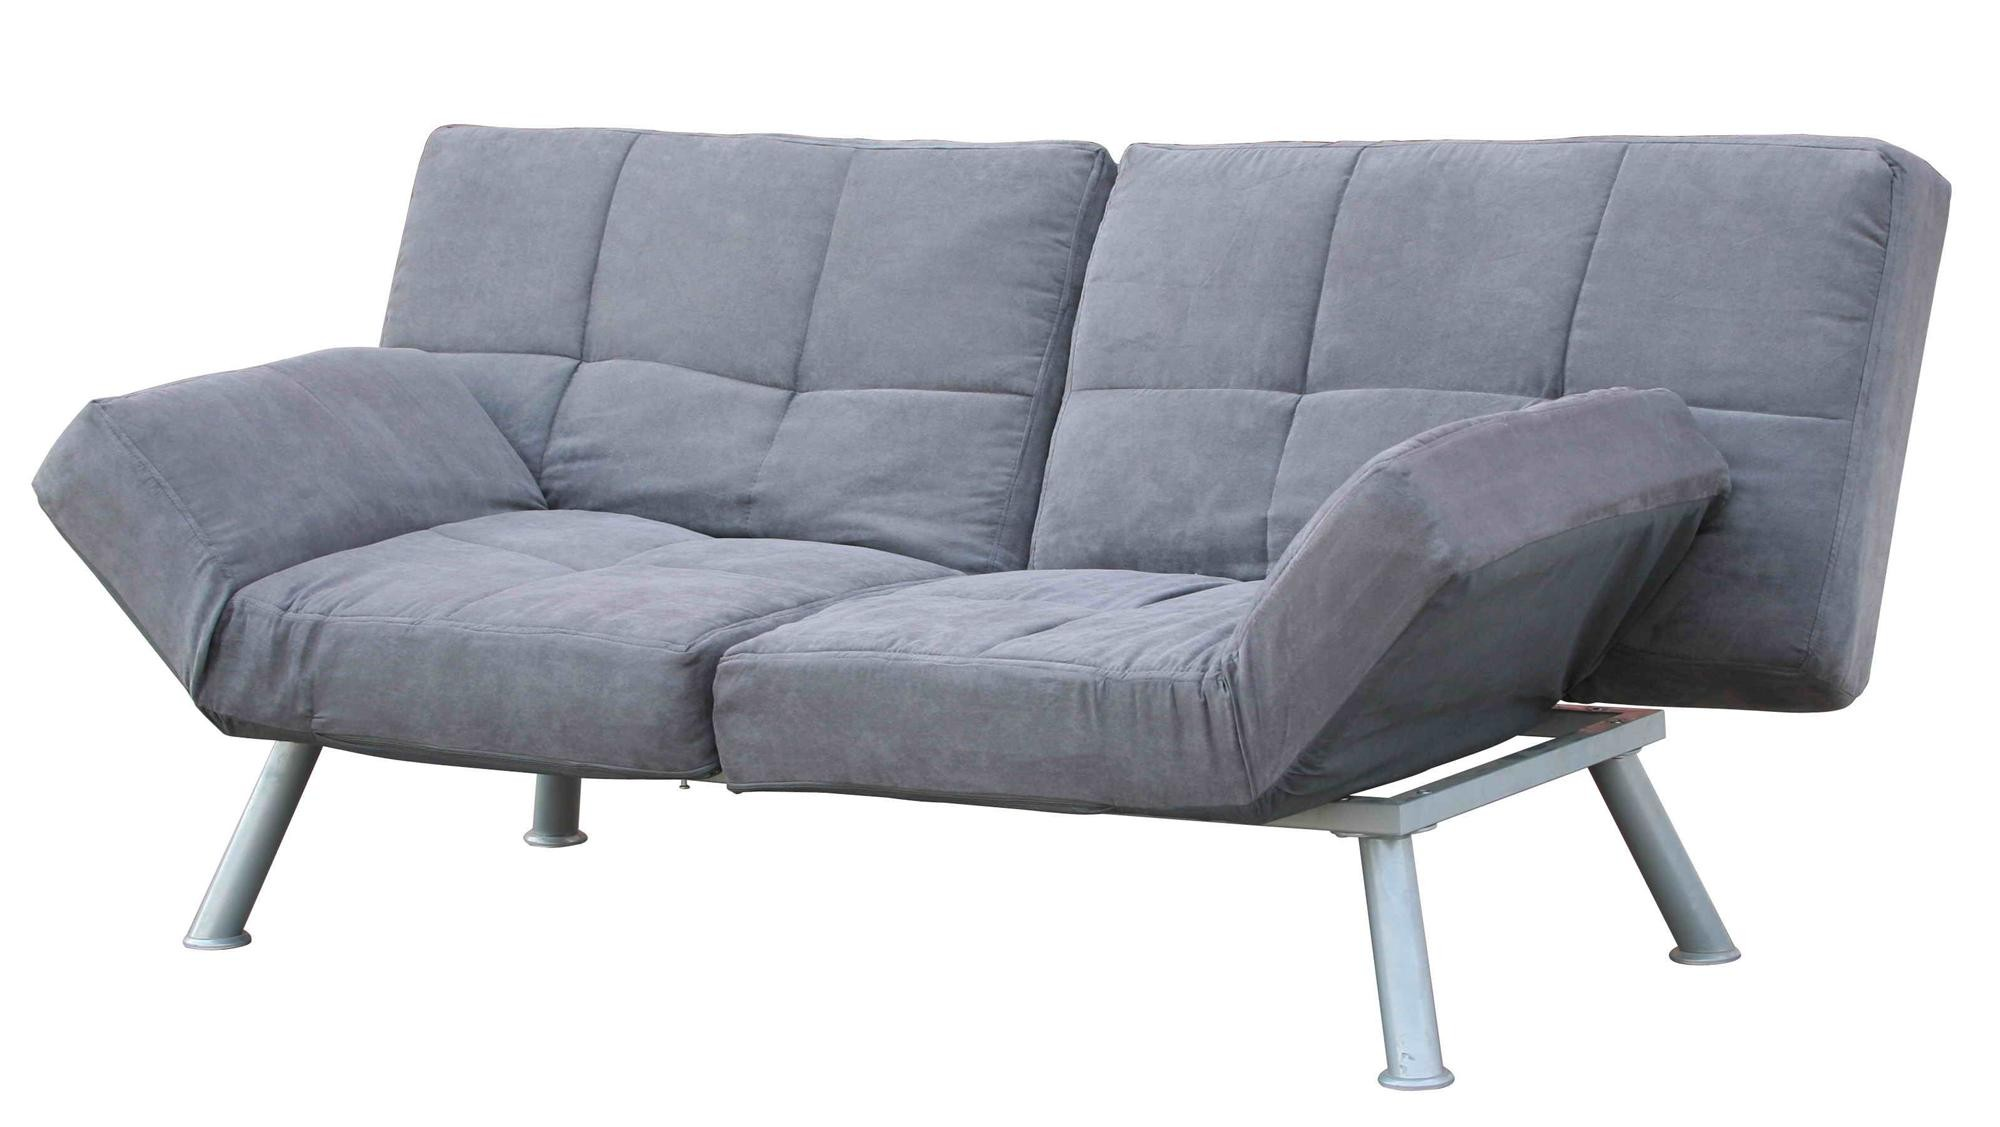 velvet wrought are couch base homesfeed comfortable futons with most iron